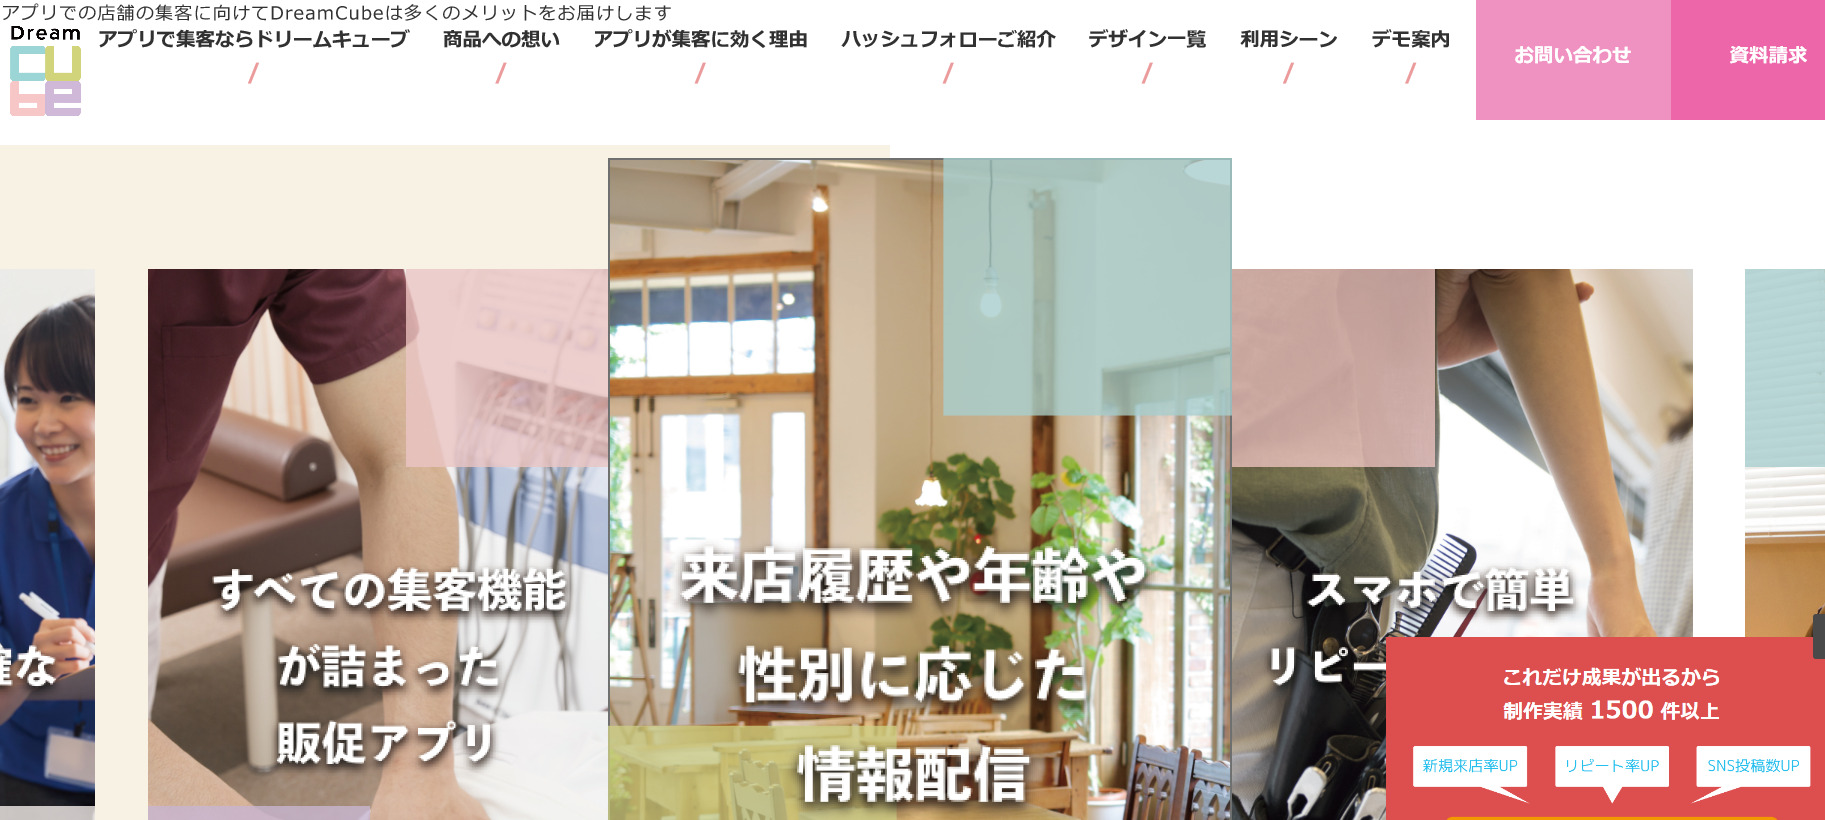 DreamCubeのホームぺージ